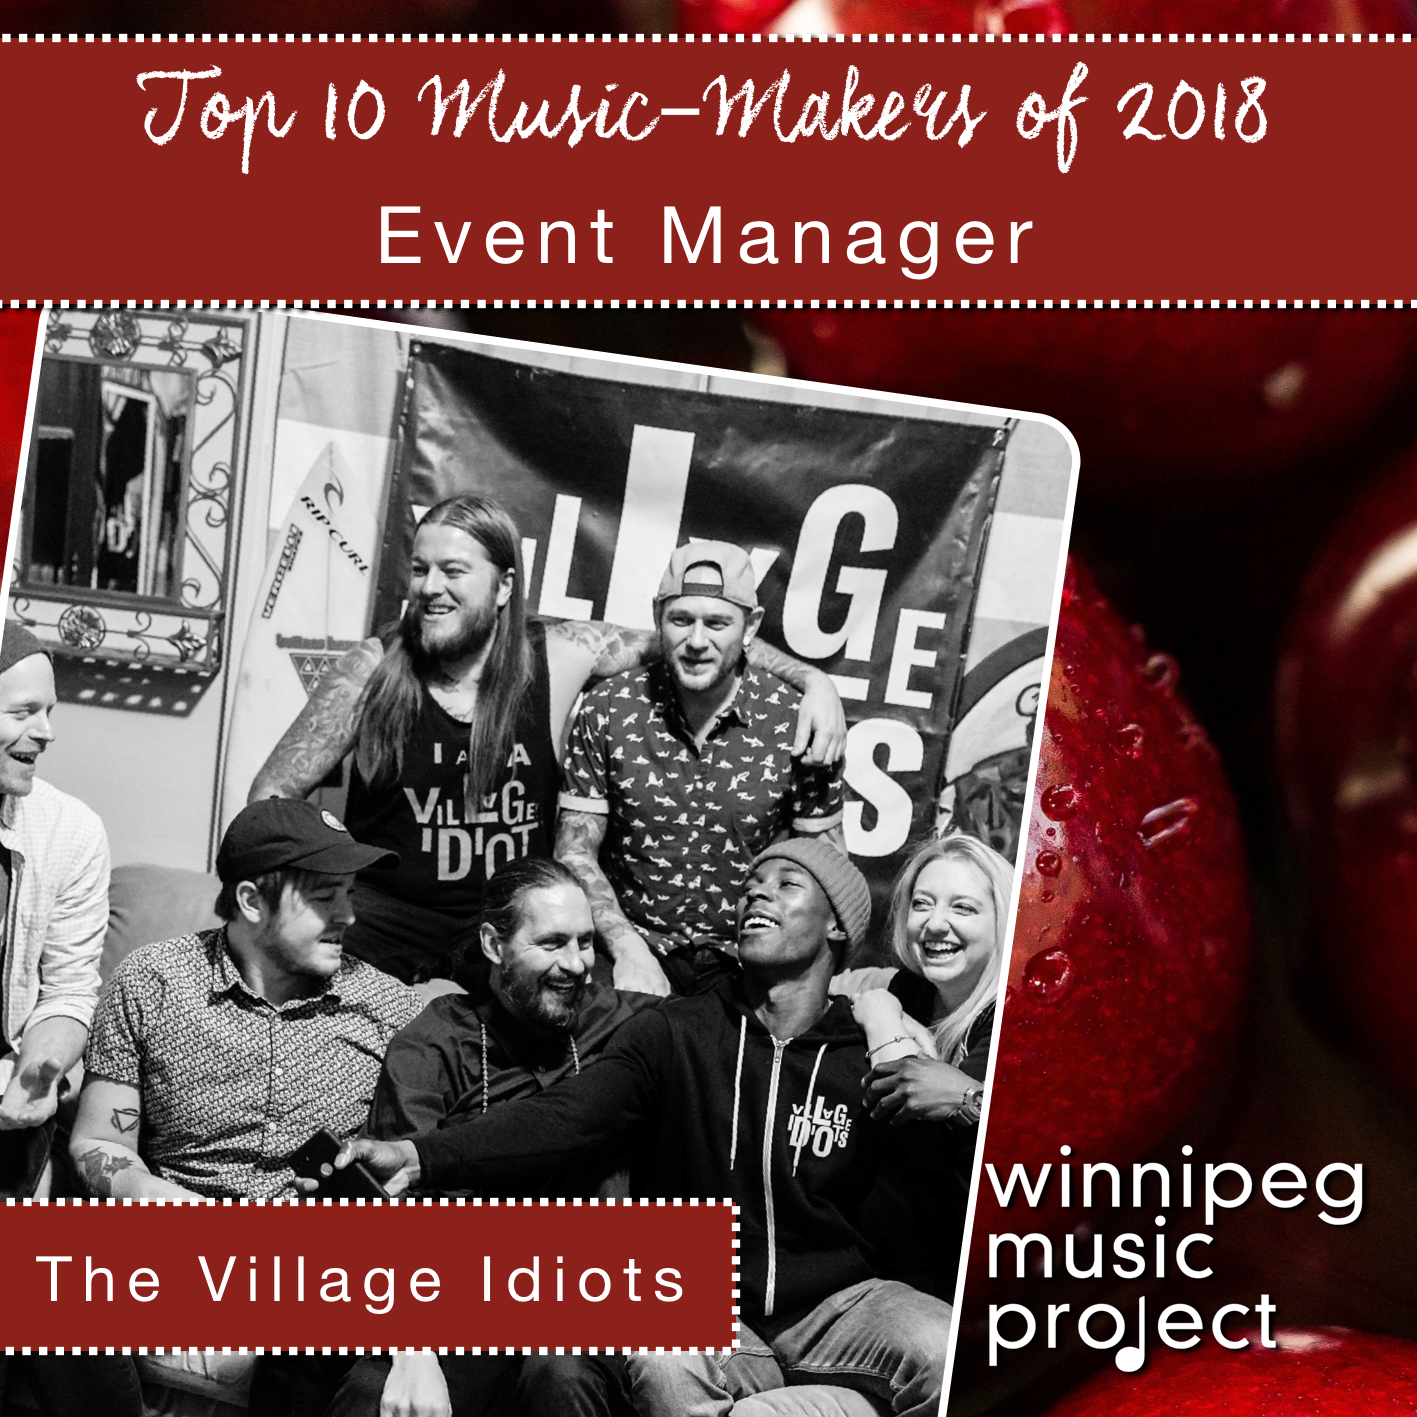 The Village Idiots | Top 10 Music Makers of 2018 | Winnipeg Music Project